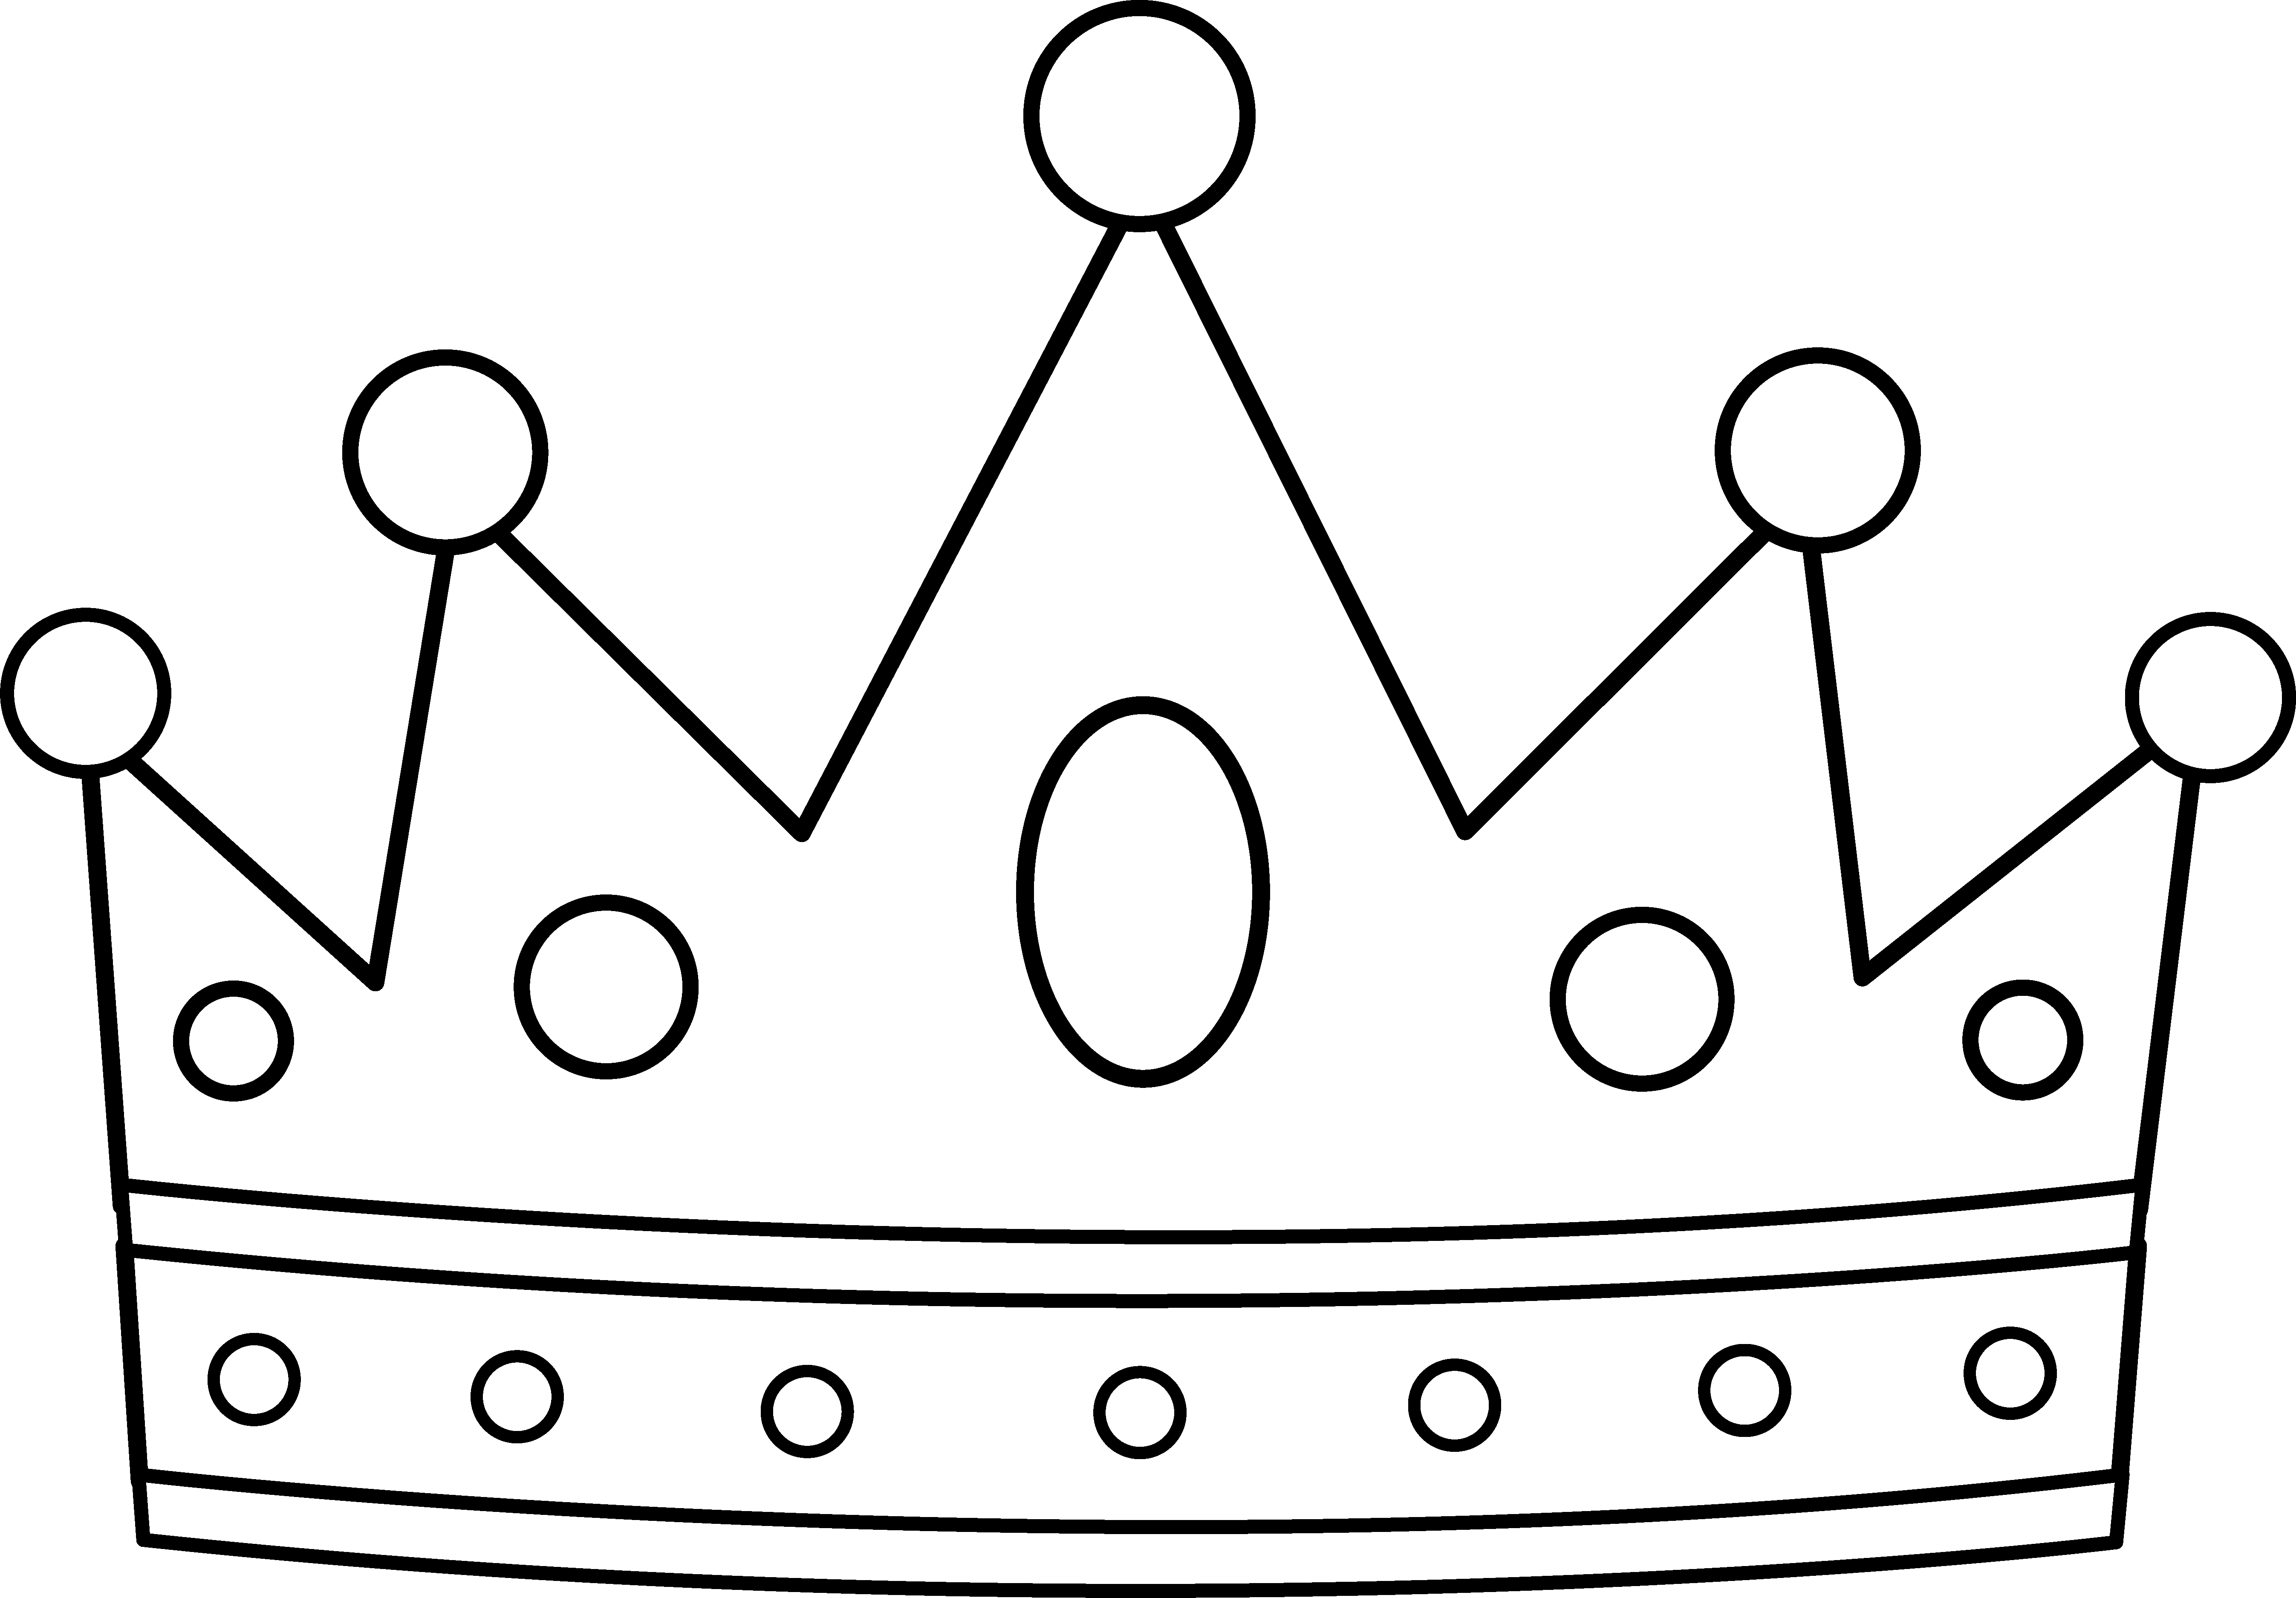 Modest image inside crown printable